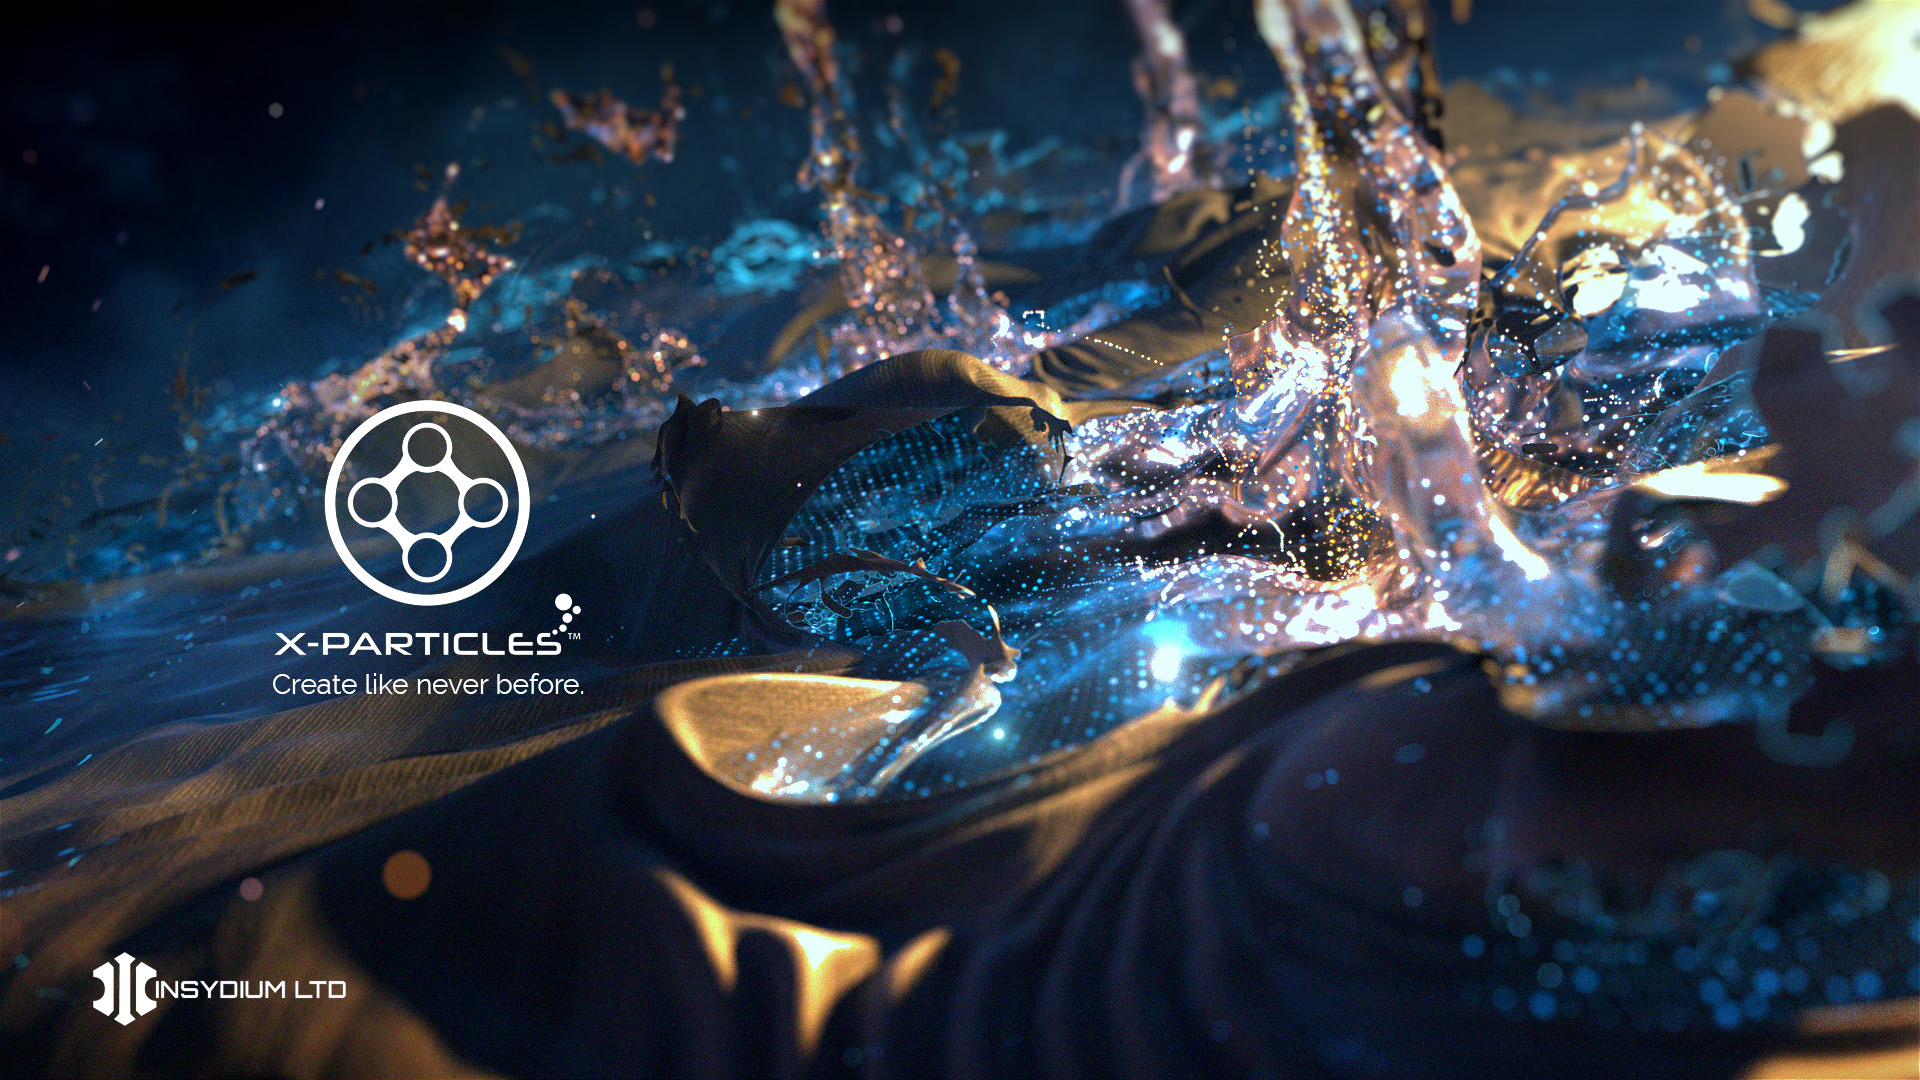 INSYDIUM LTD | X-Particles 4 - Create like never before